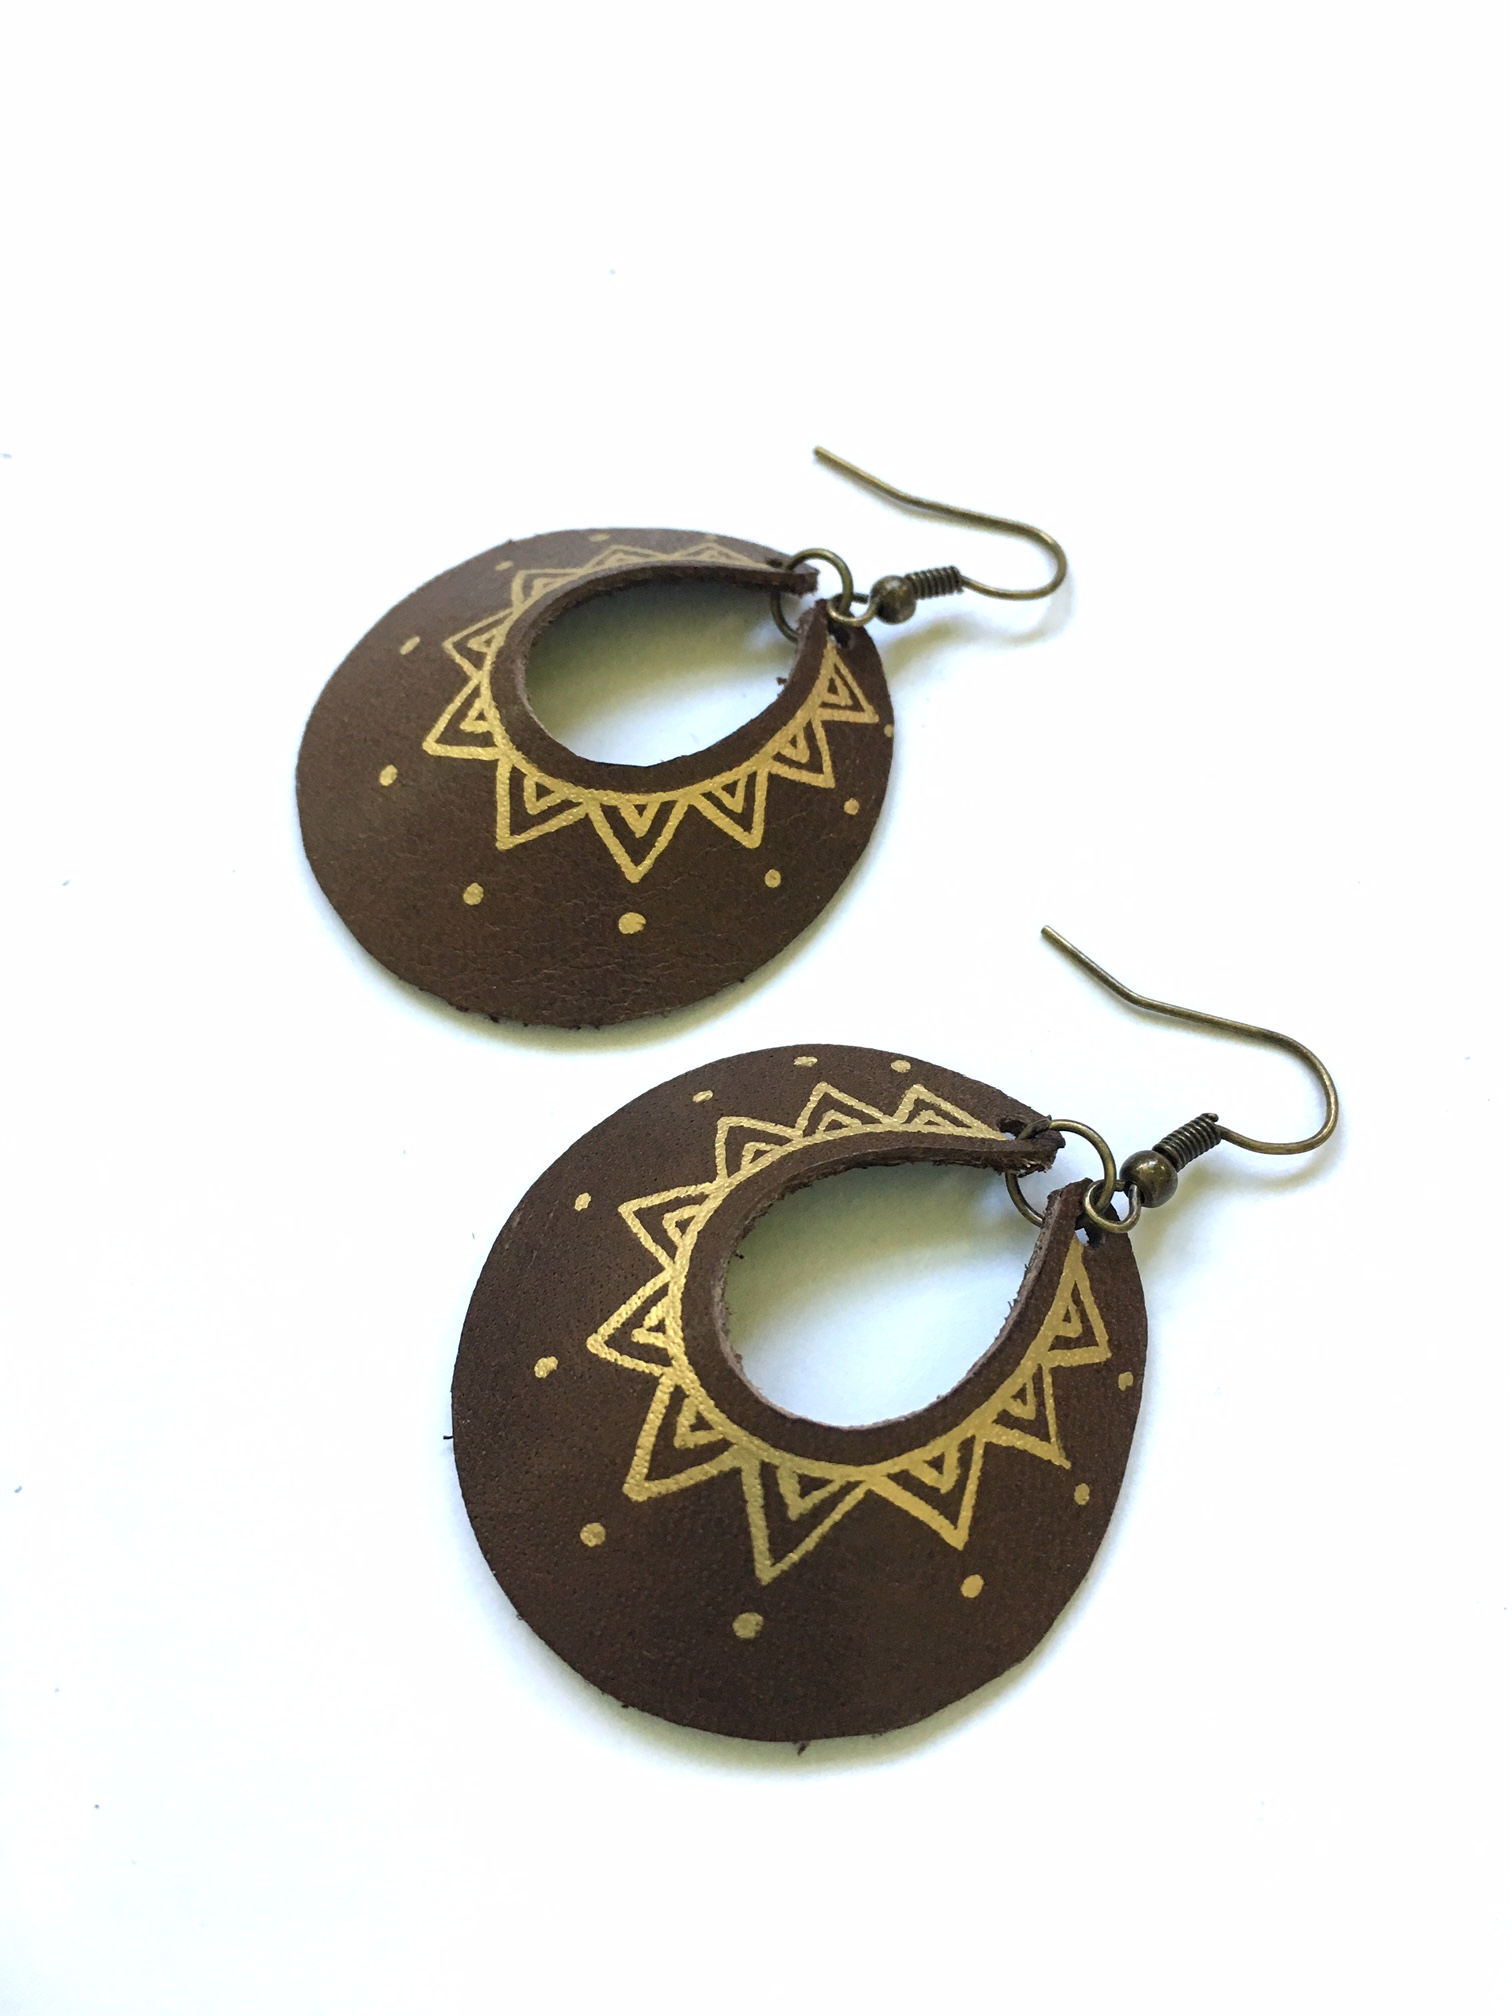 Brown Yum Hoops - small or large